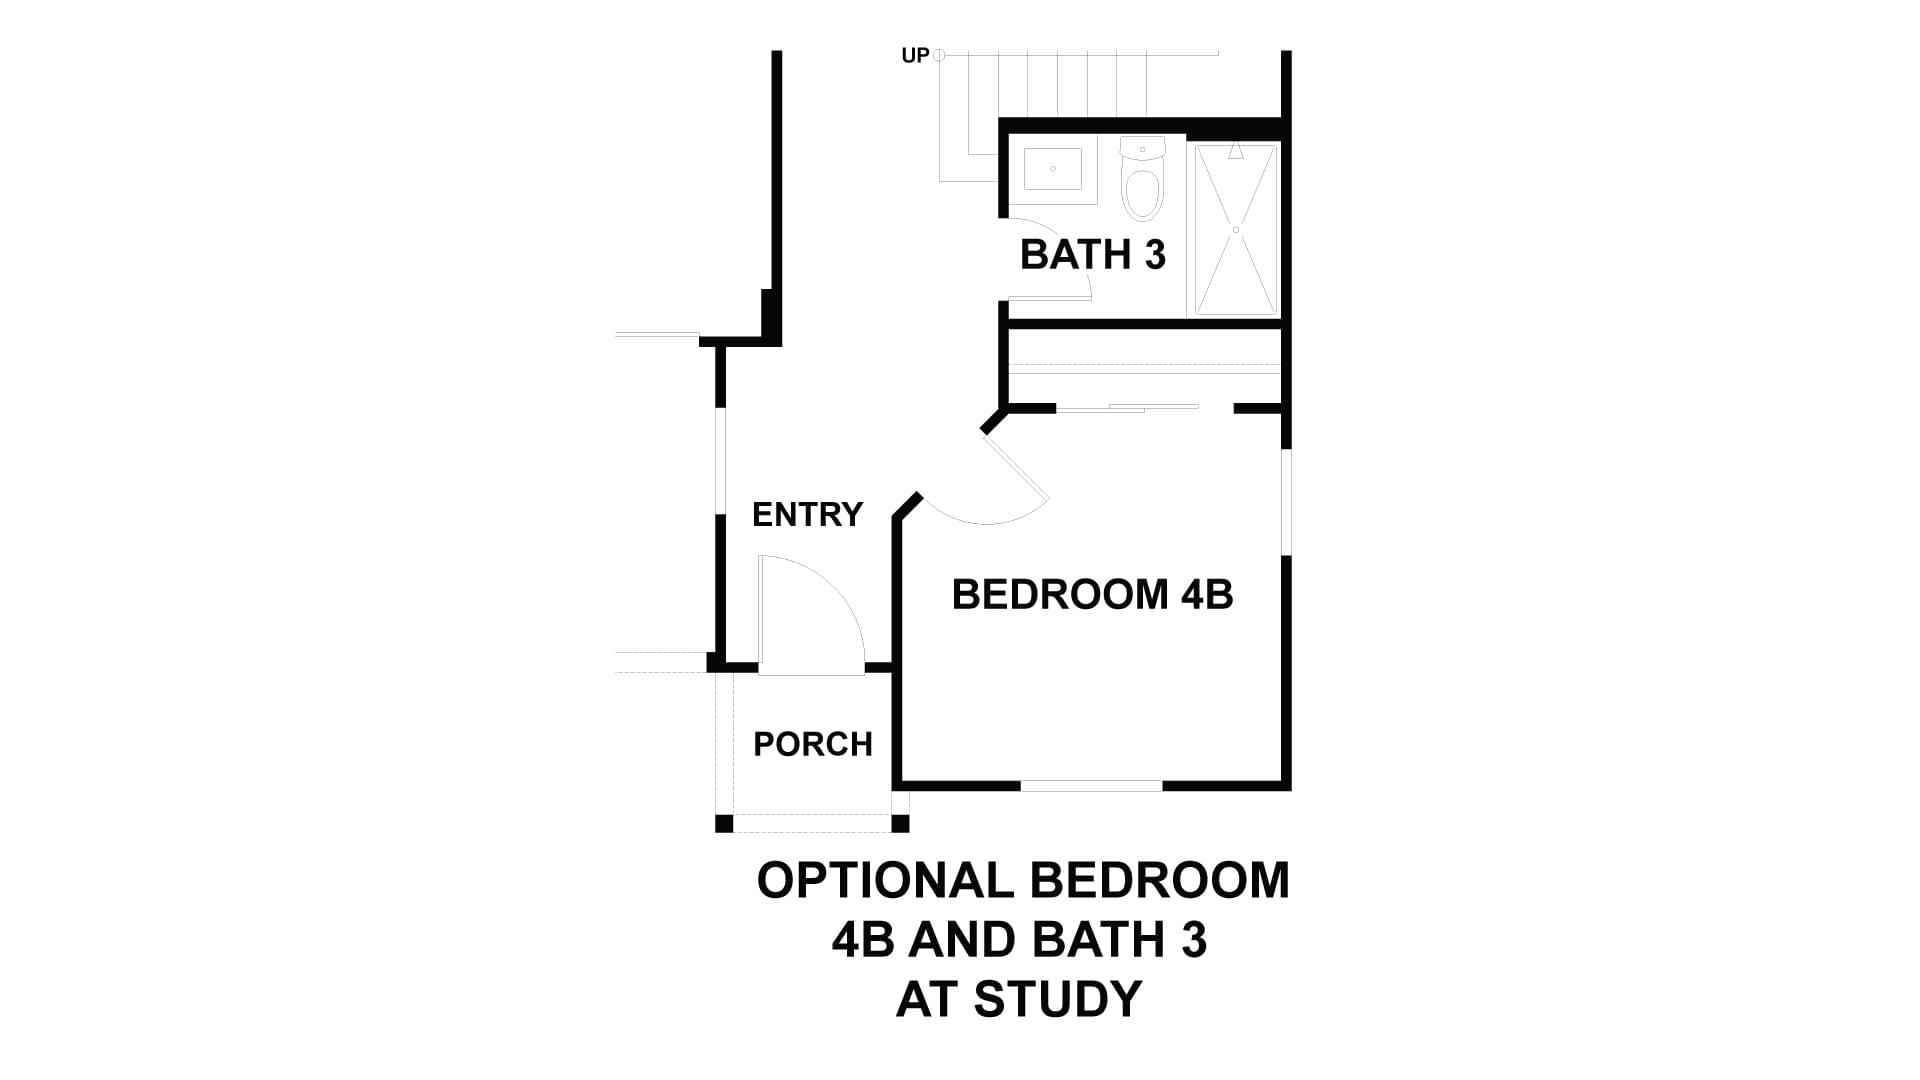 Optional Bedroom 4B and Bath 3 in Lieu of Study. 2,401sf New Home in Costa Mesa, CA